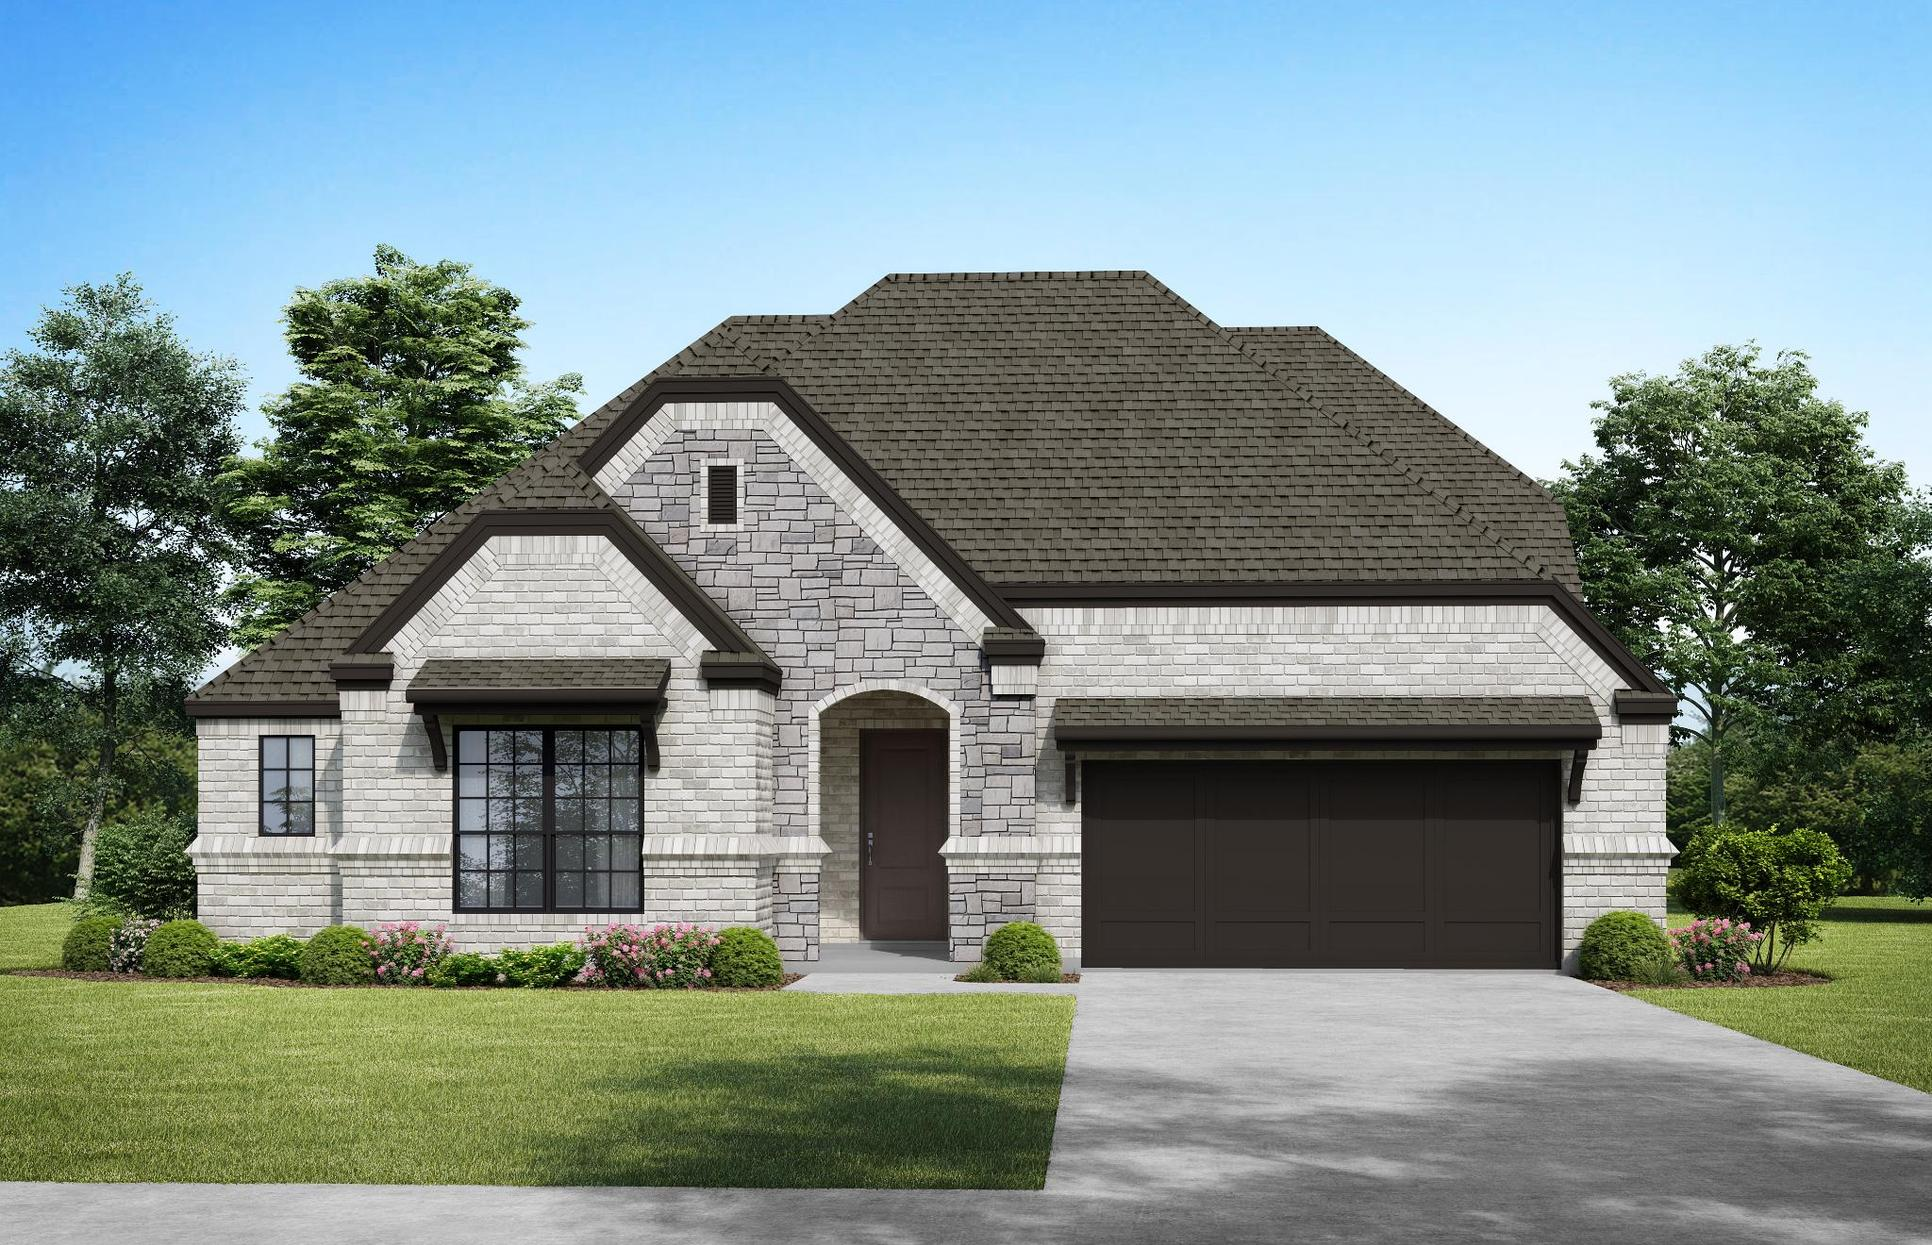 The Bellvue - Elevation A. Images are artist renderings and will differ from the actual home built.:Elevation A